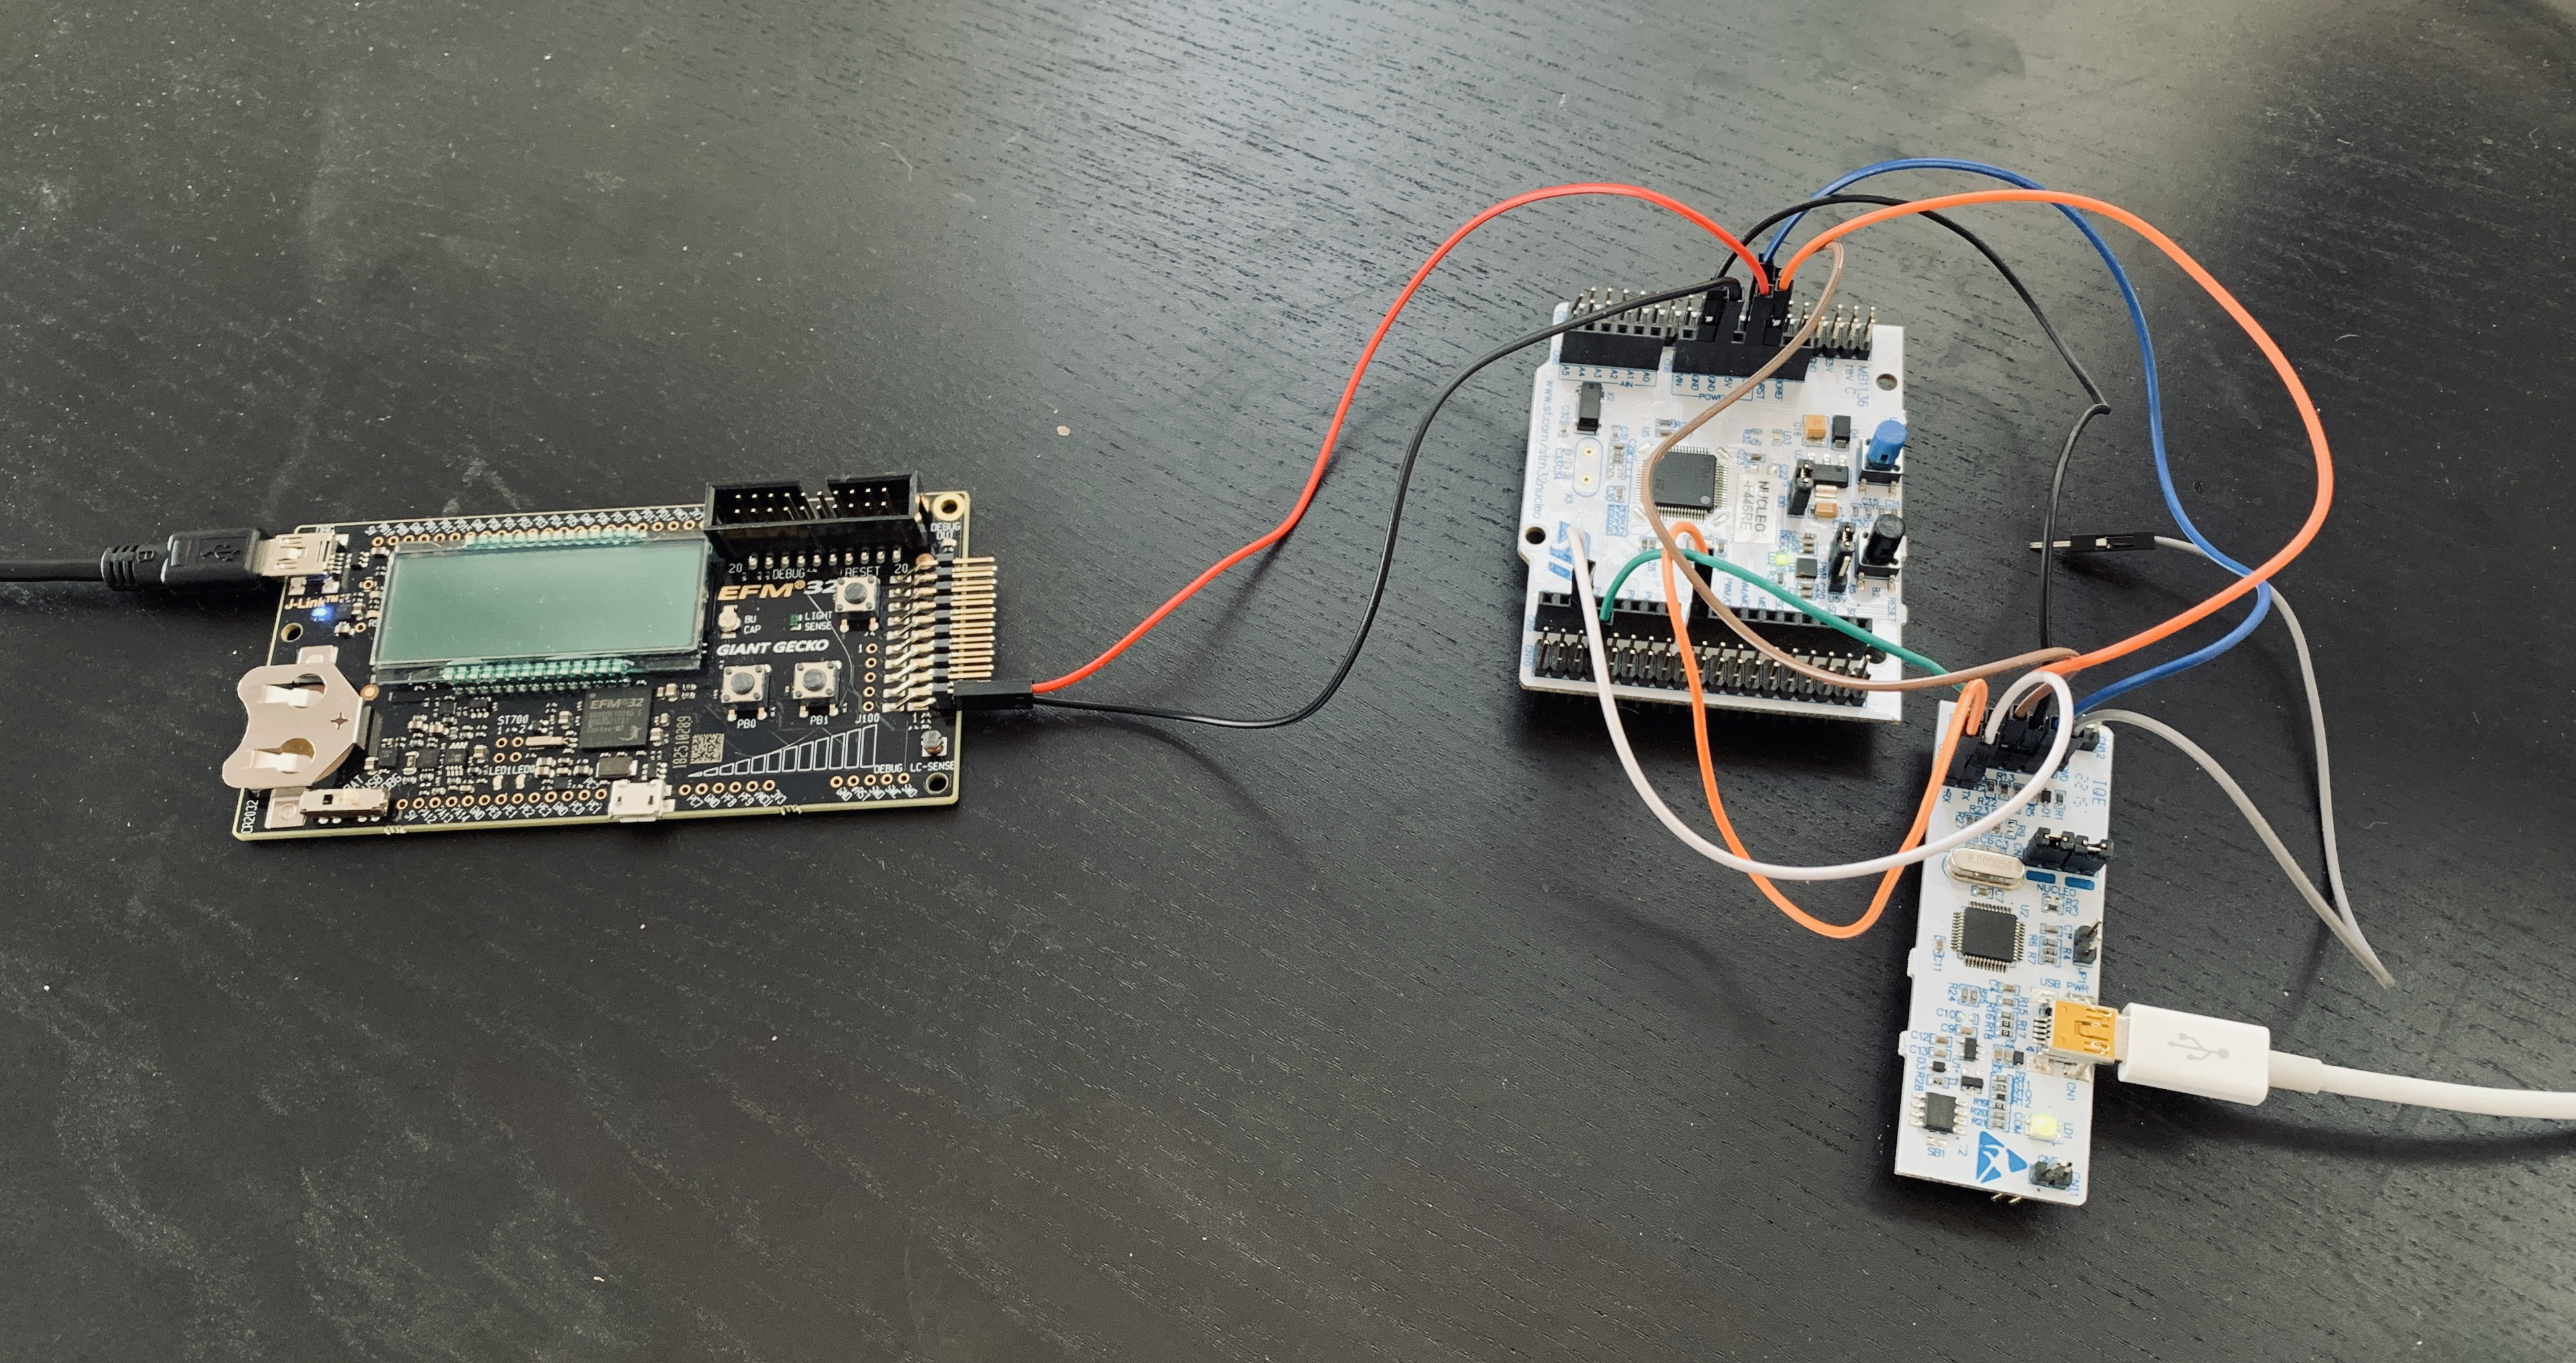 Power management in Mbed OS